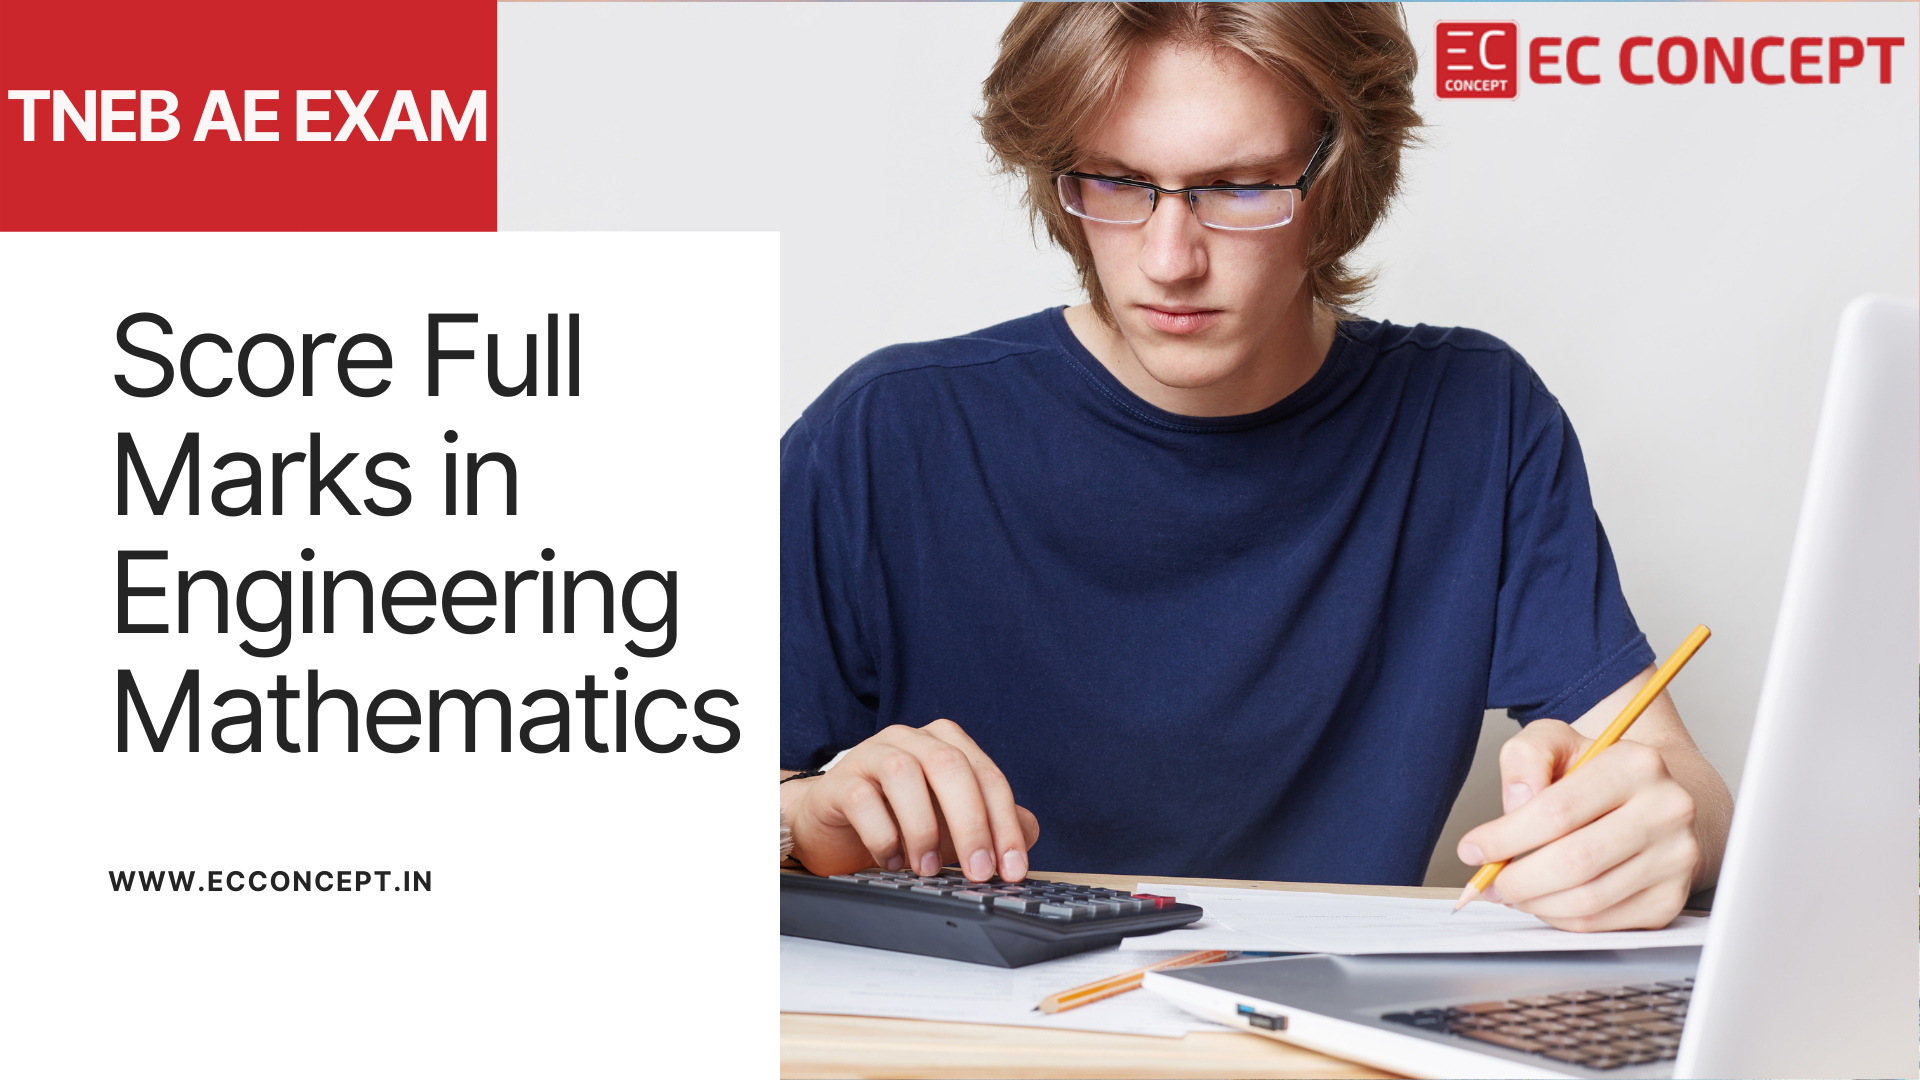 How to score full marks in Engineering Mathematics in TNEB-AE?